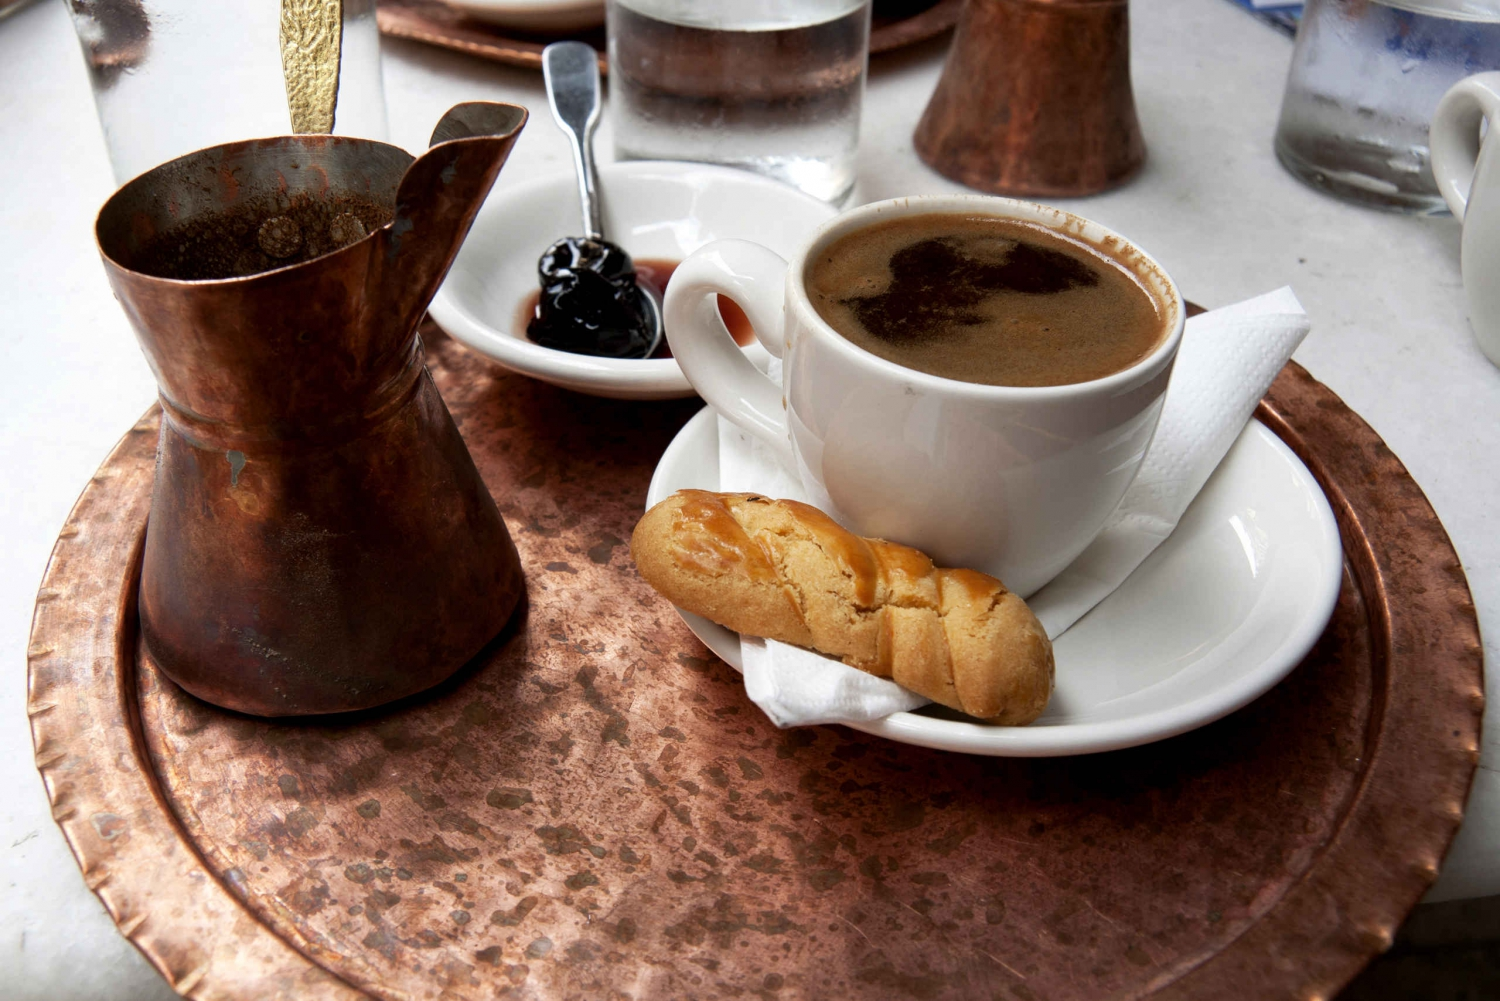 AA (5-6 hours): [Athens] The city streets and great eats tour